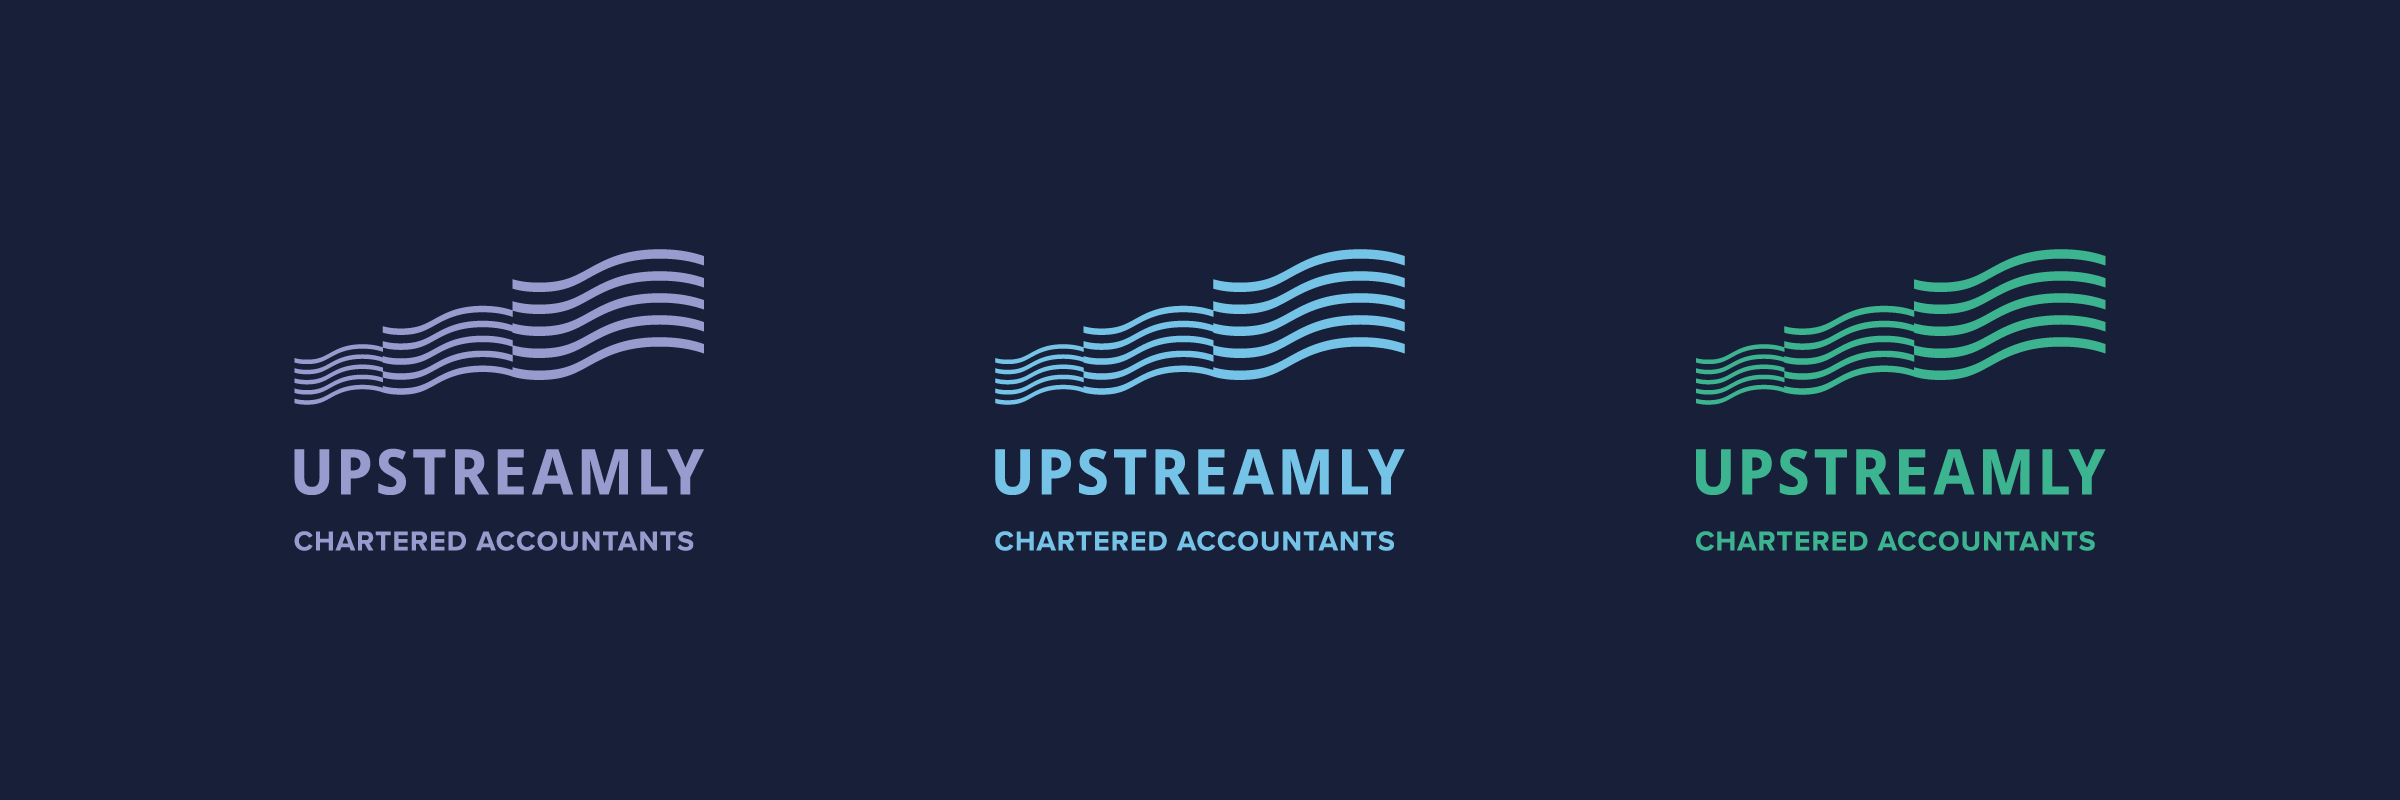 Upstreamly